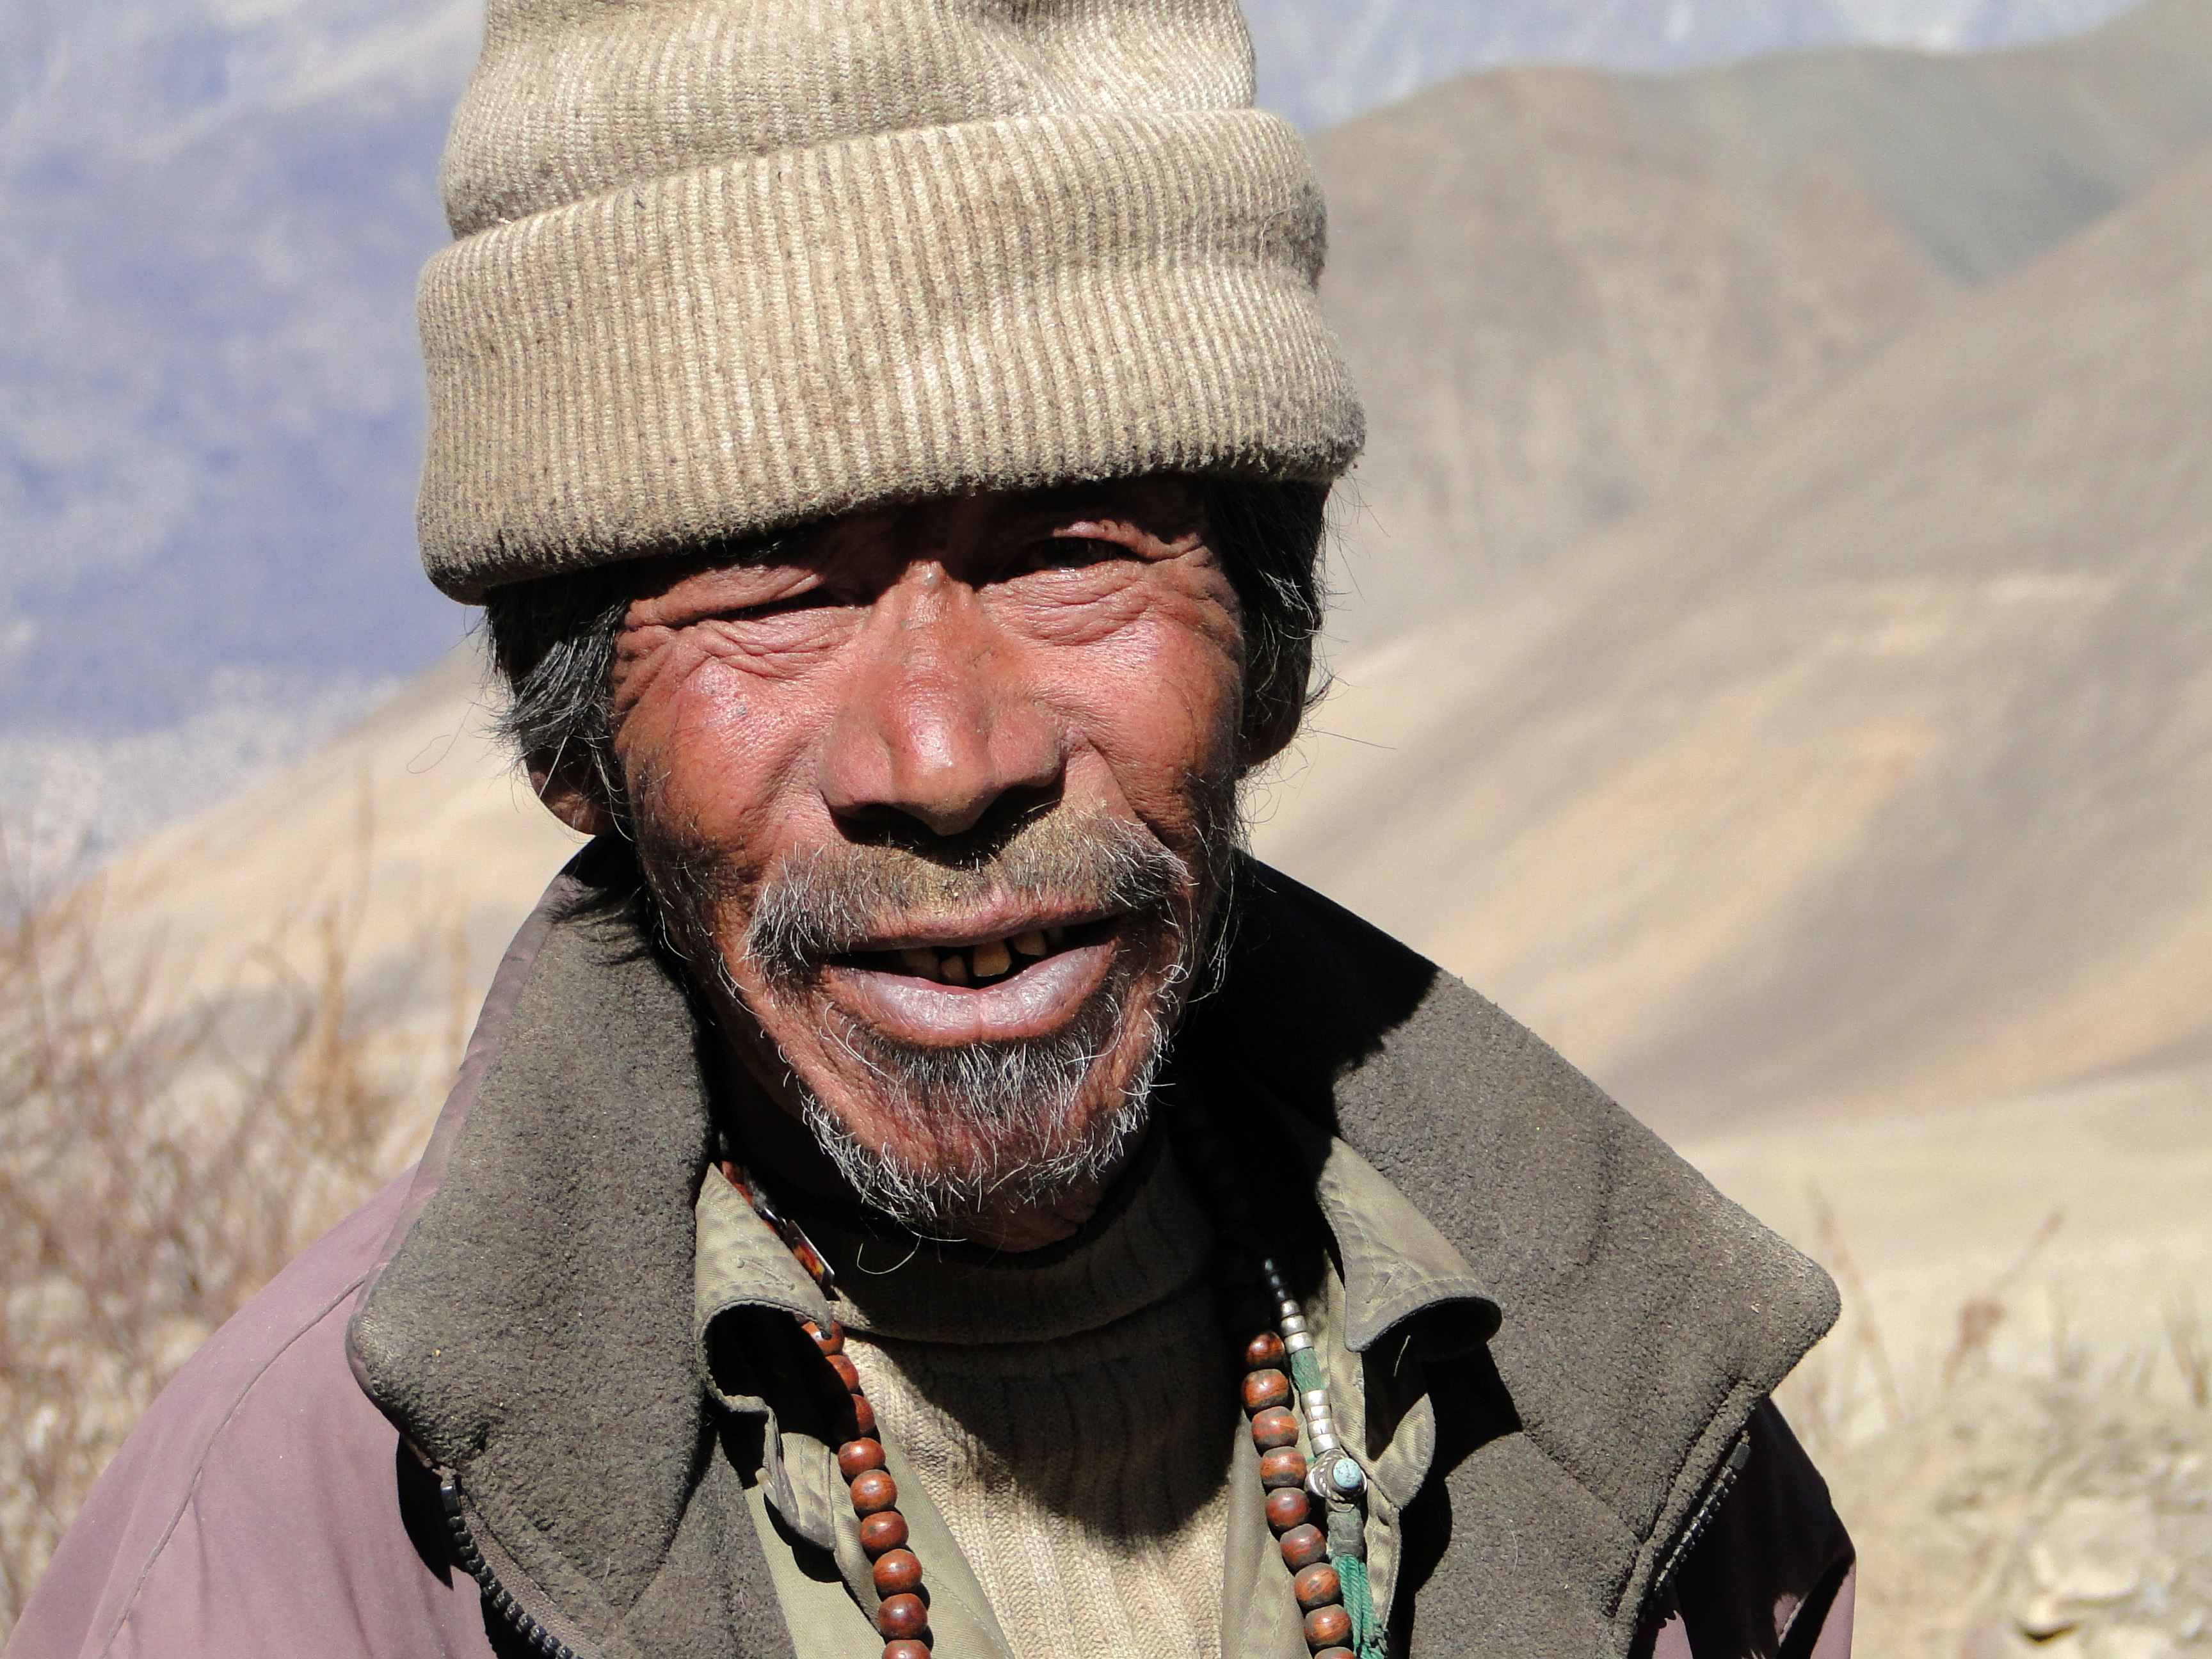 Old Man In Nepal With A Weather Beaten Face Image Free